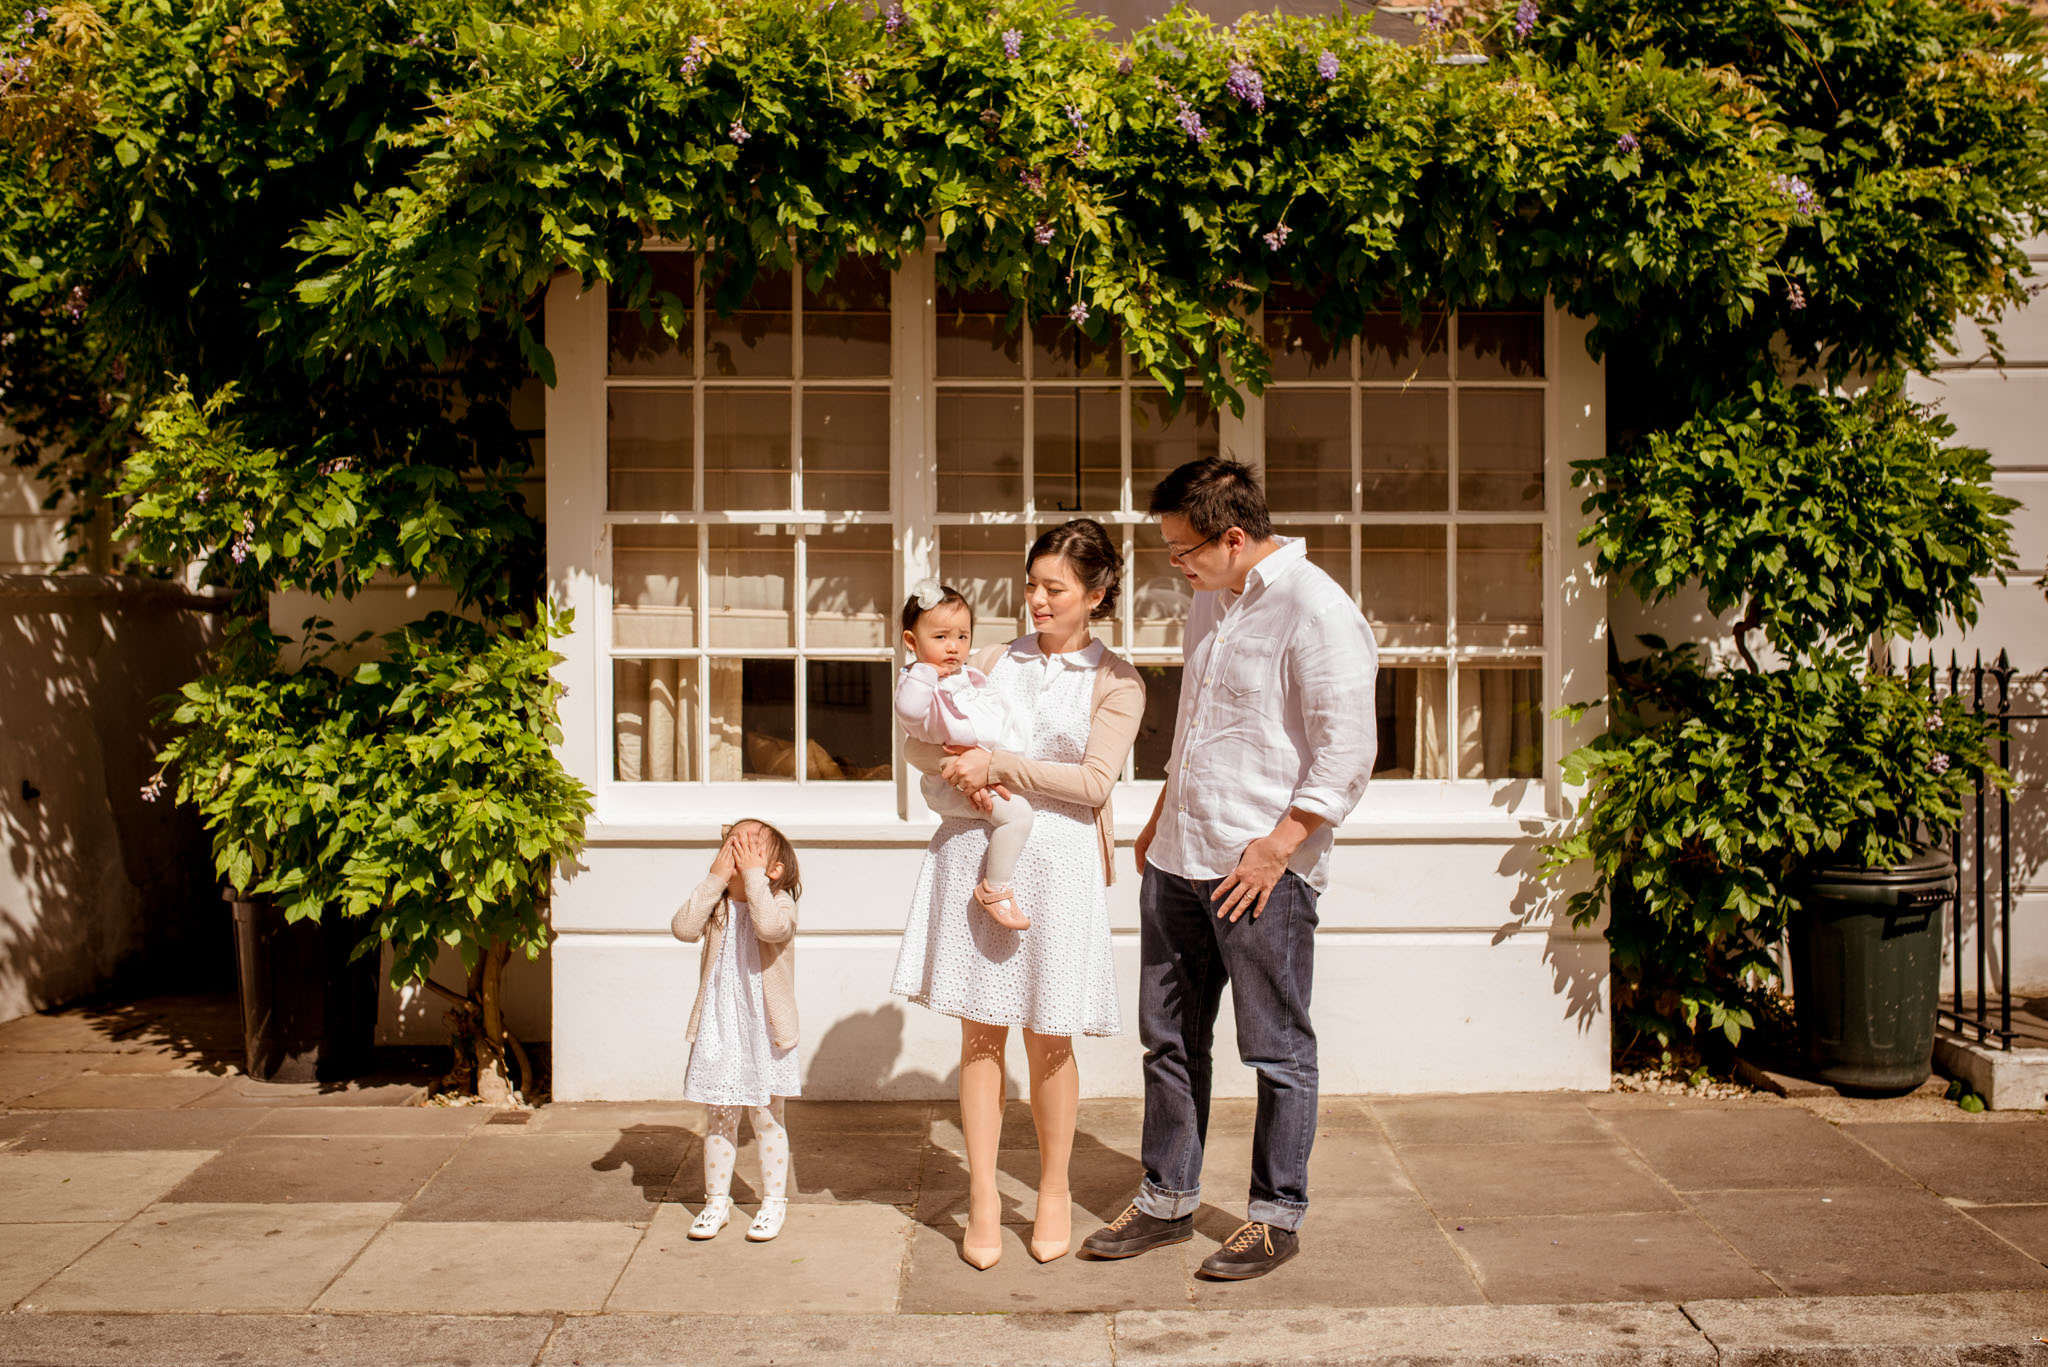 Outdoor family portrait session London